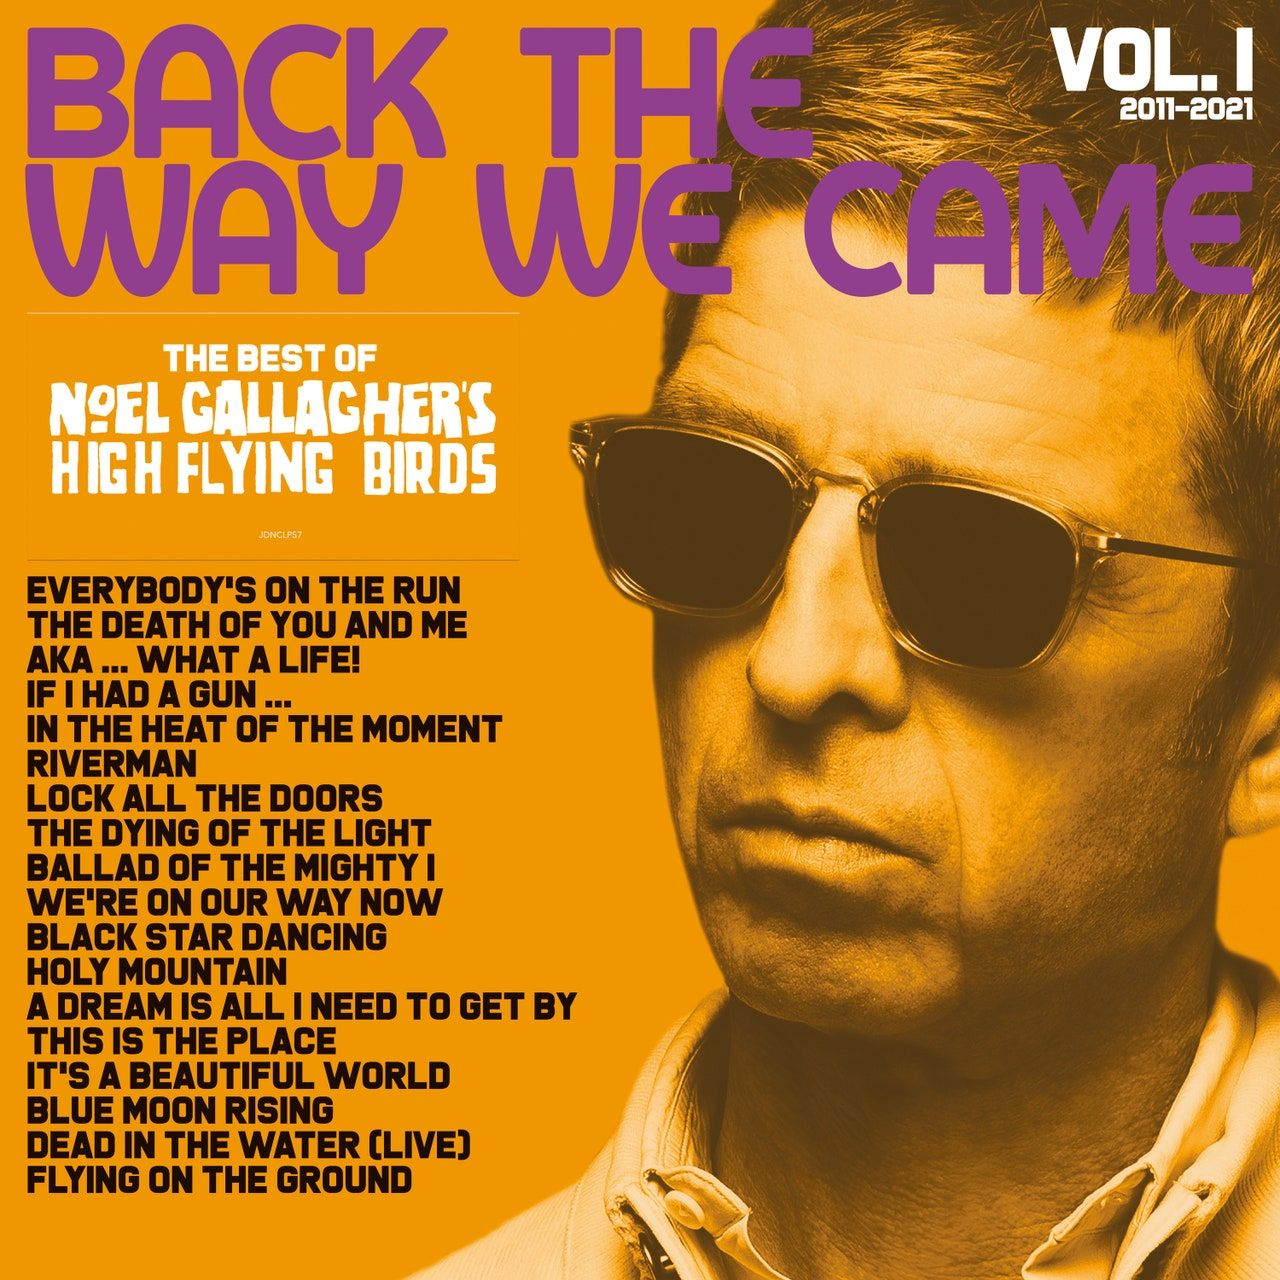 Noel Gallagher's High Flying Birds - Back The Way We Came: Vol 1 (2011-2021) - 2LP